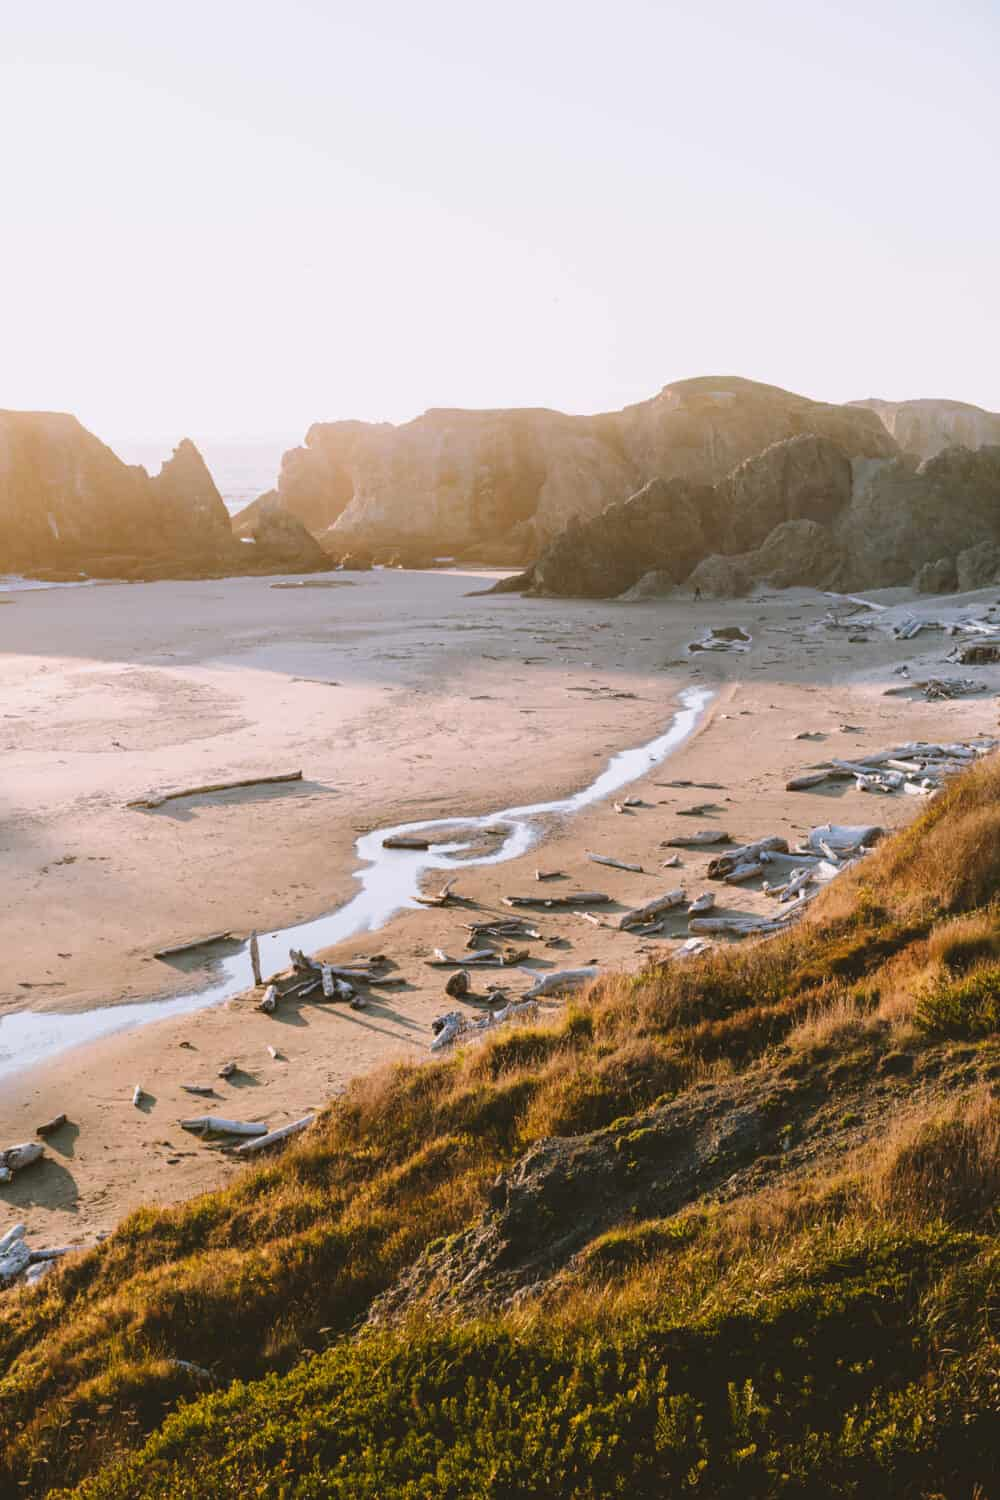 North Bandon Beach, Oregon